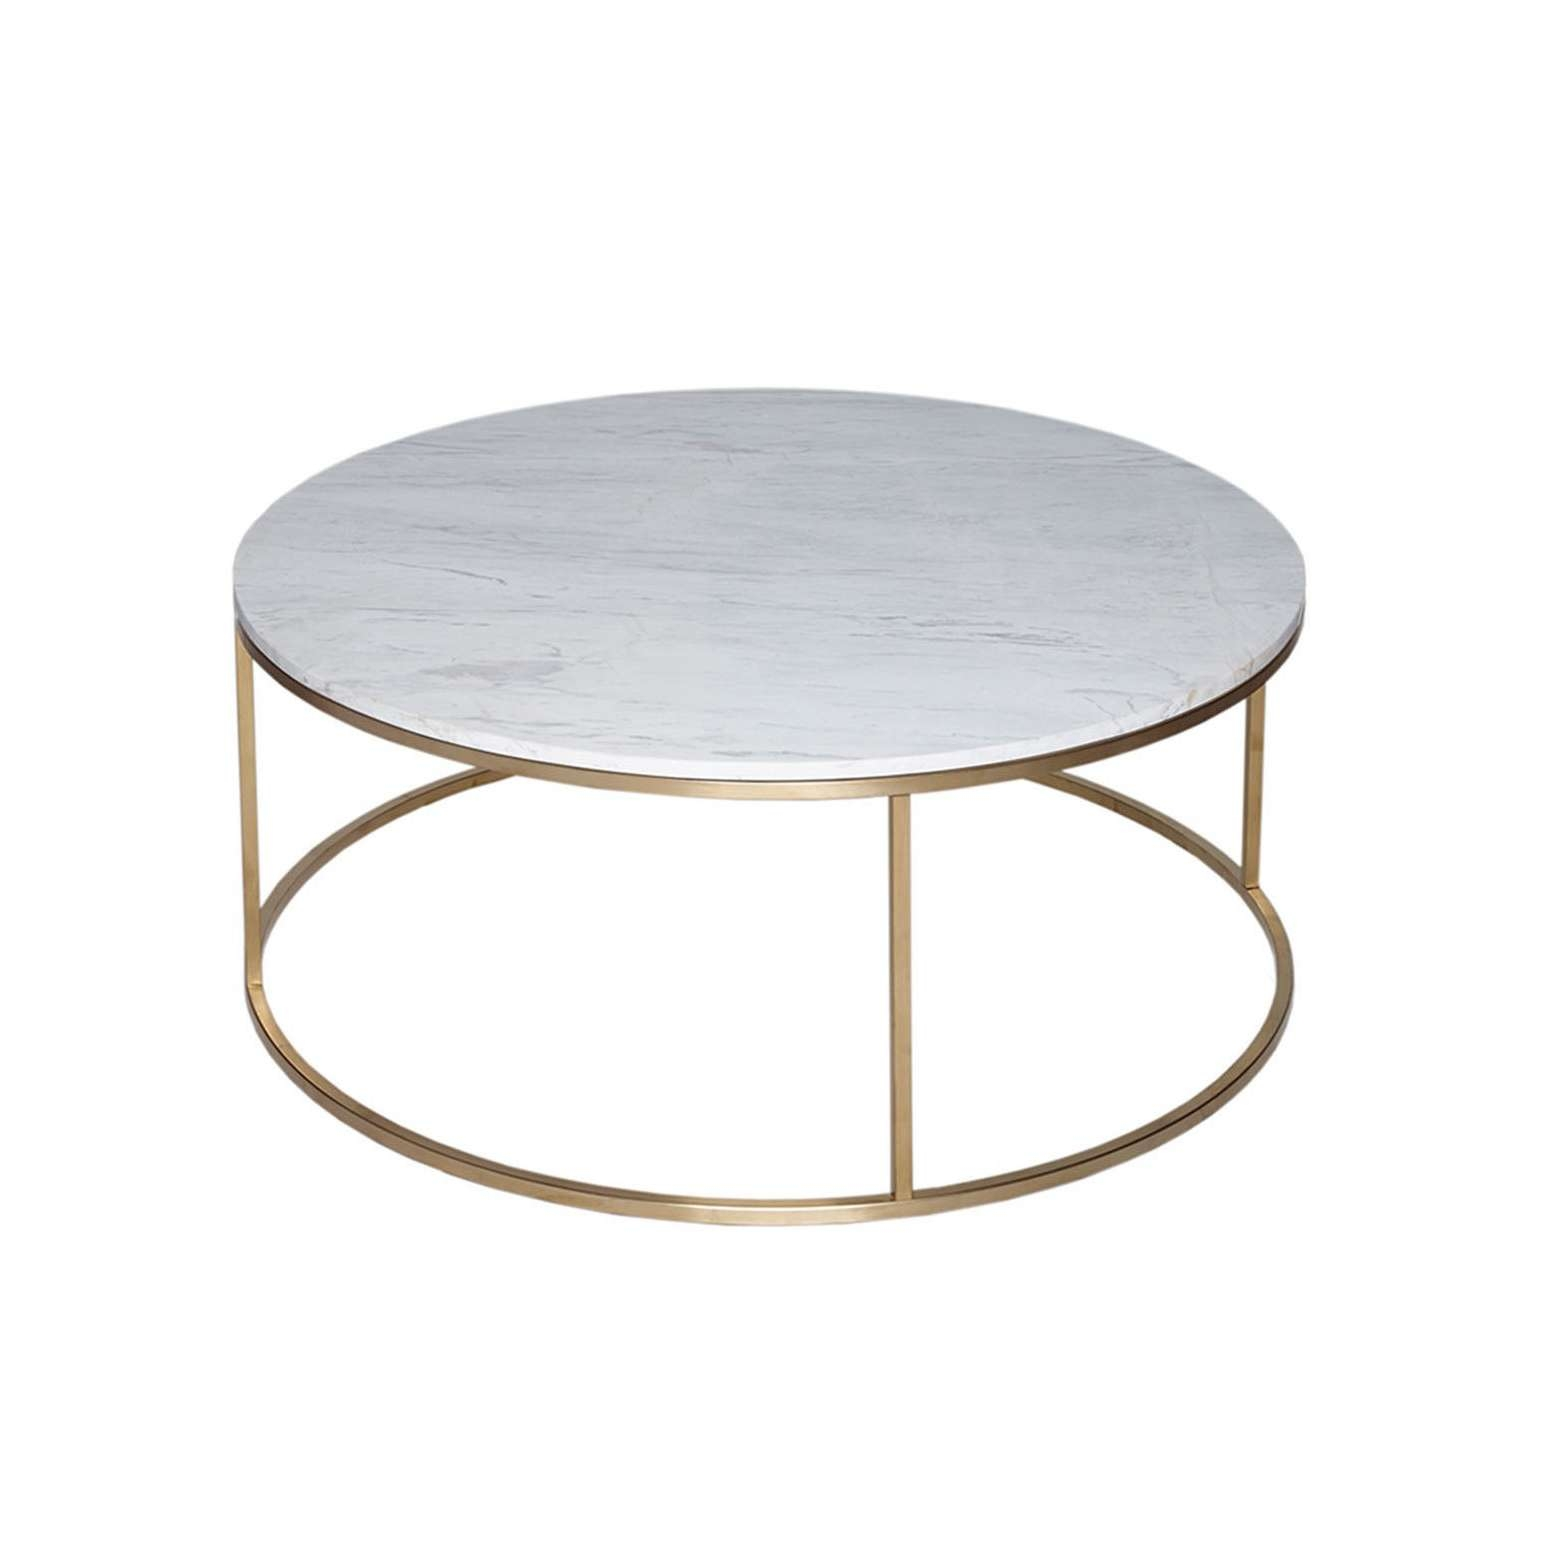 2017 Marble Round Coffee Tables Pertaining To Coffee Table : Wonderful White Round Coffee Table Glass Top Coffee (View 2 of 20)